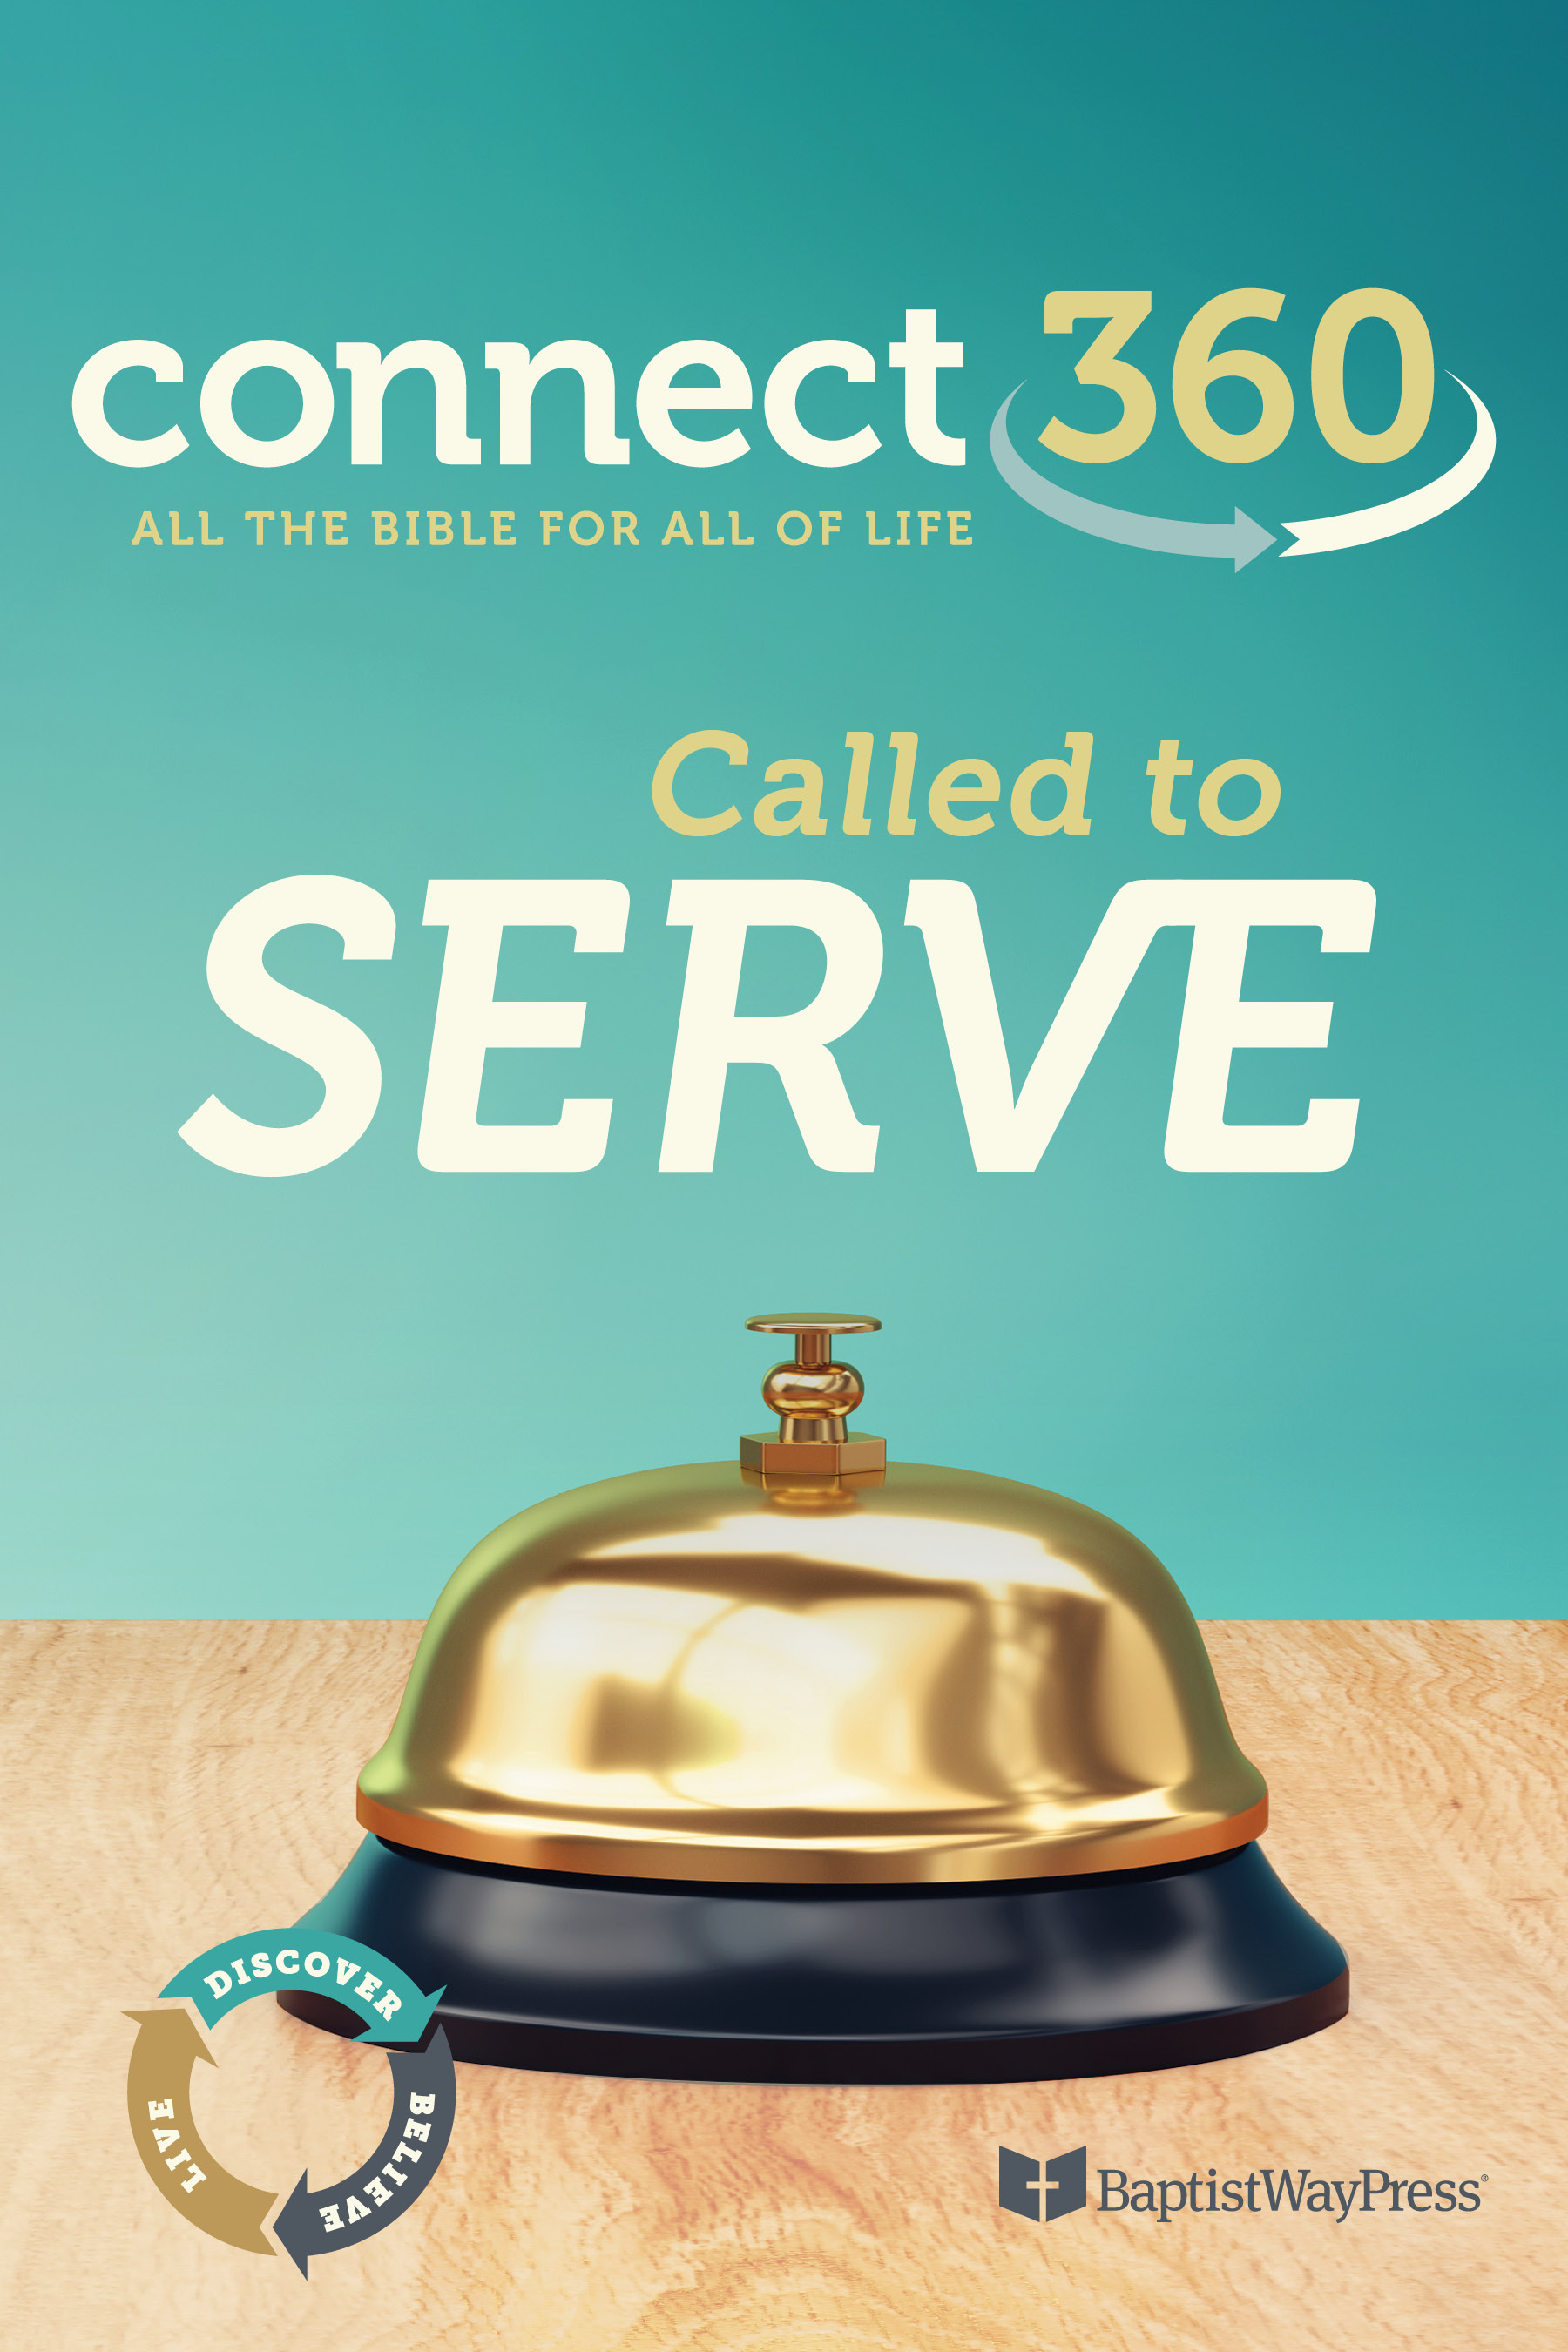 connect360optionsSERVE.jpg